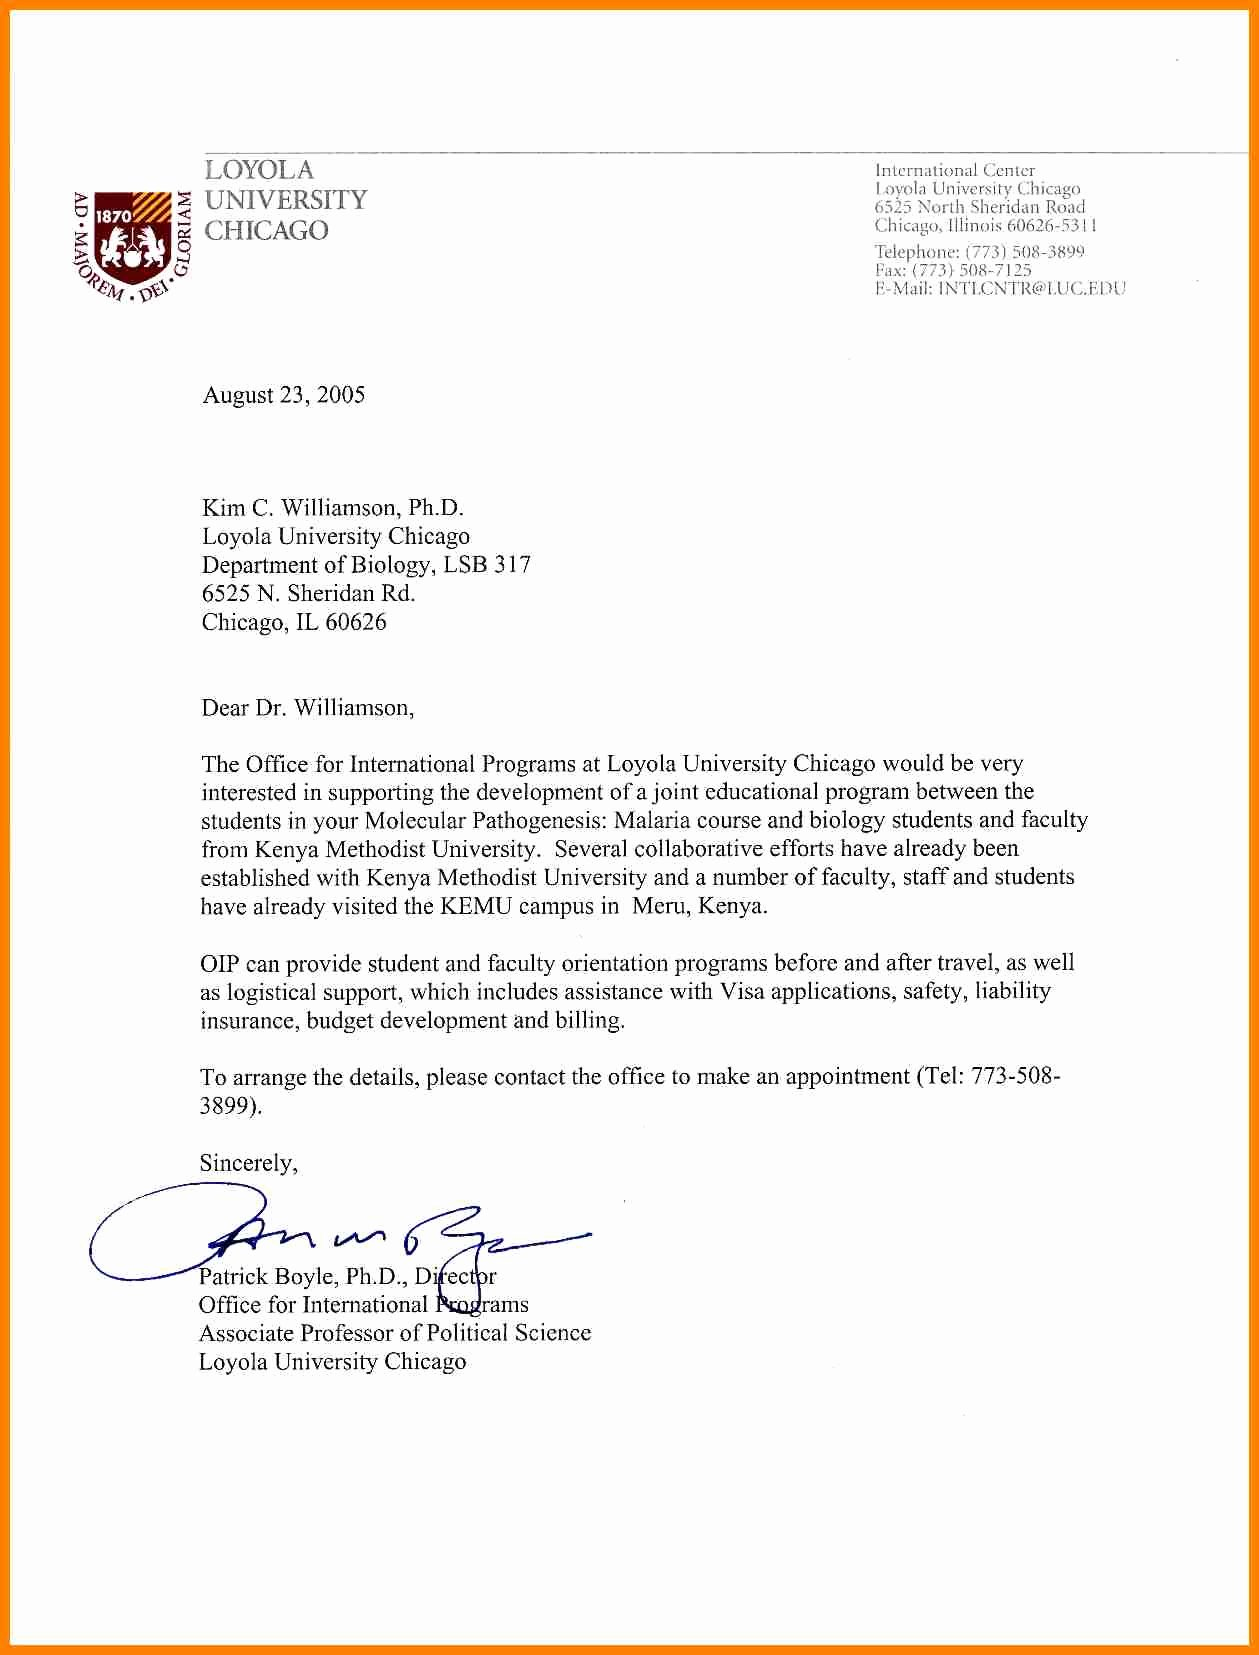 College Admission Recommendation Letter Template Elegant 12 Letter Of Re Mendation for University Admission